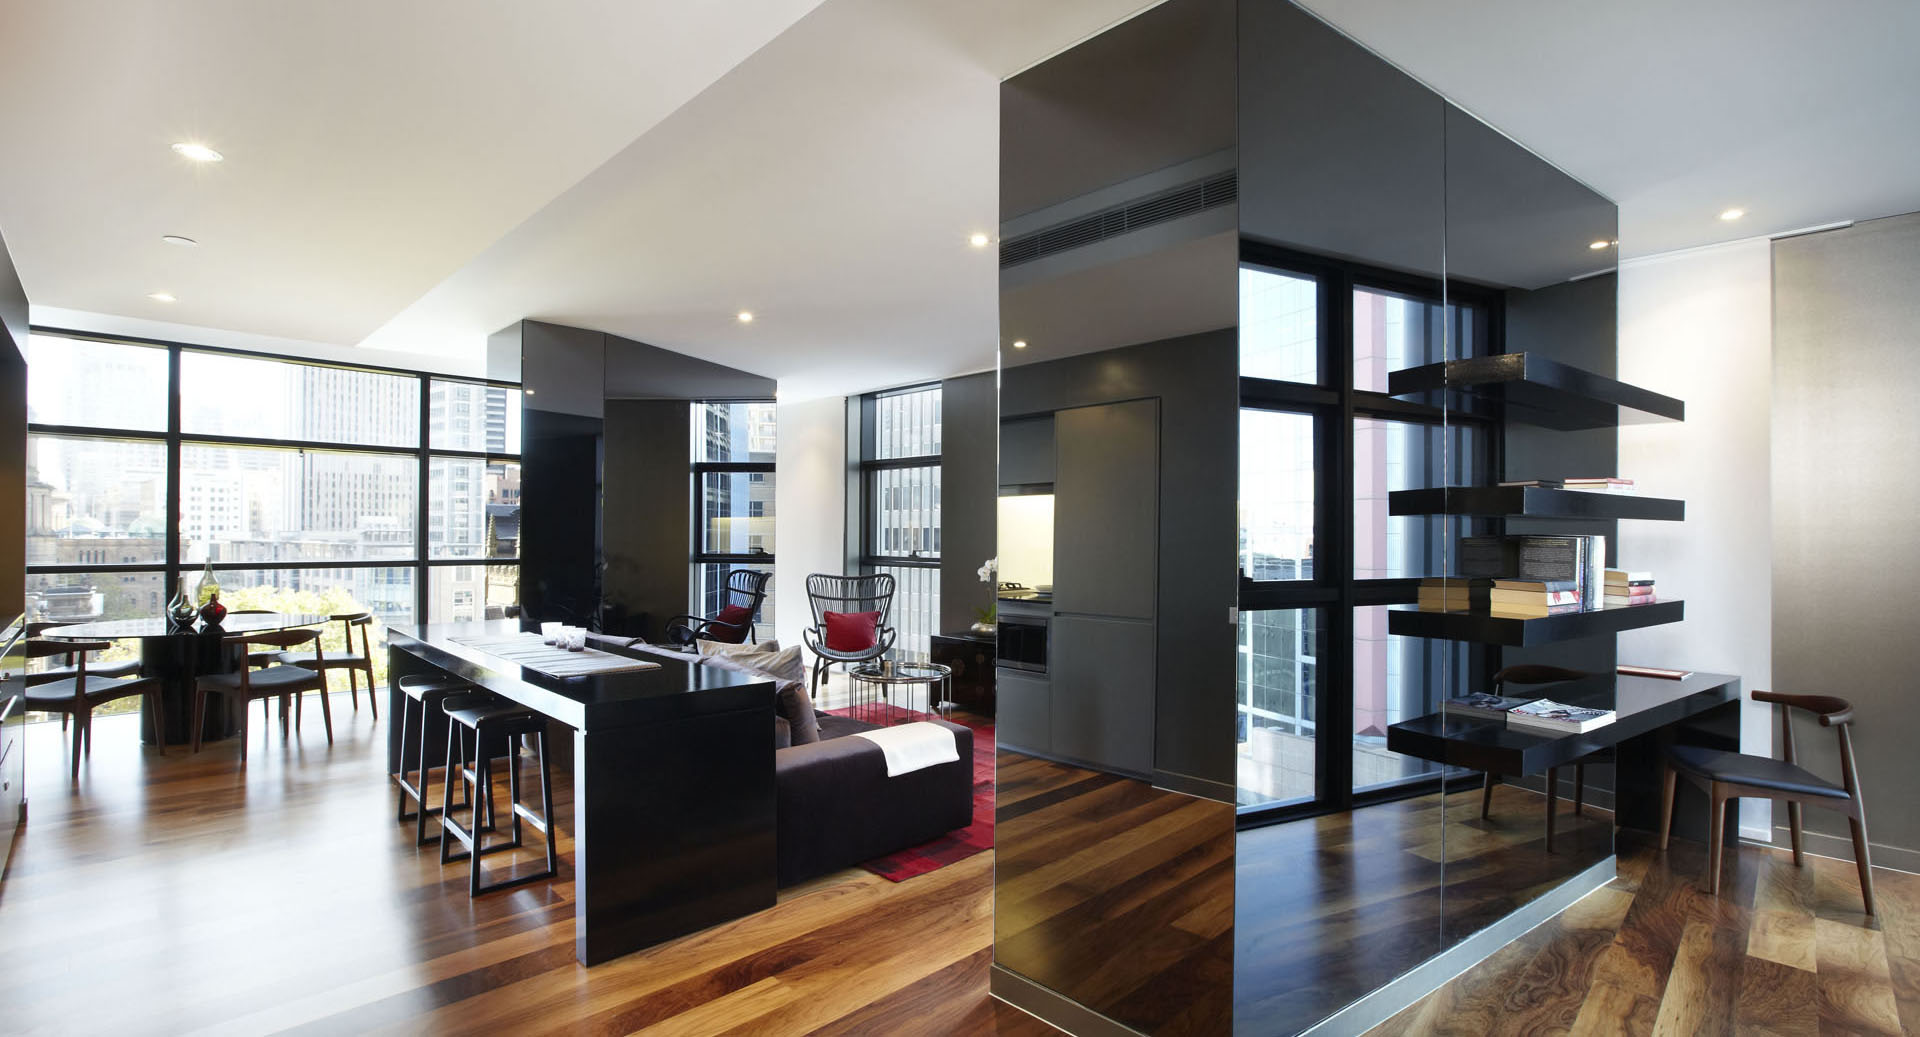 Contemporary apartment designs in sydney idesignarch Architecture interior design